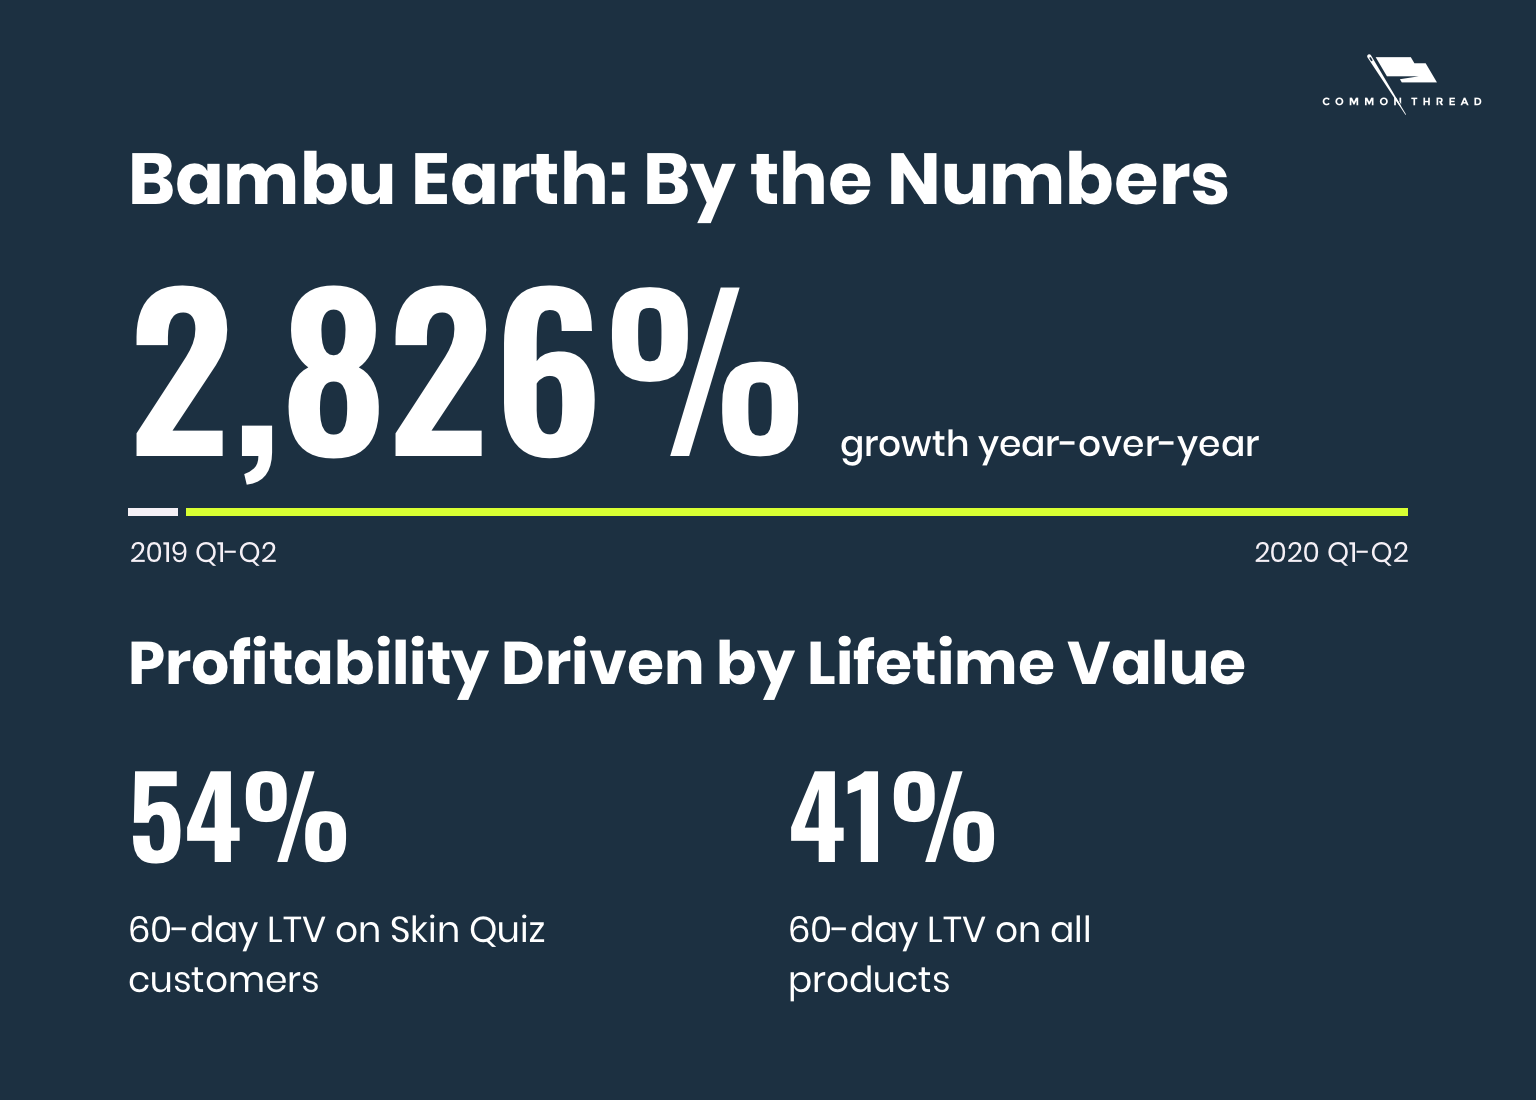 Bambu Earth by the numbers